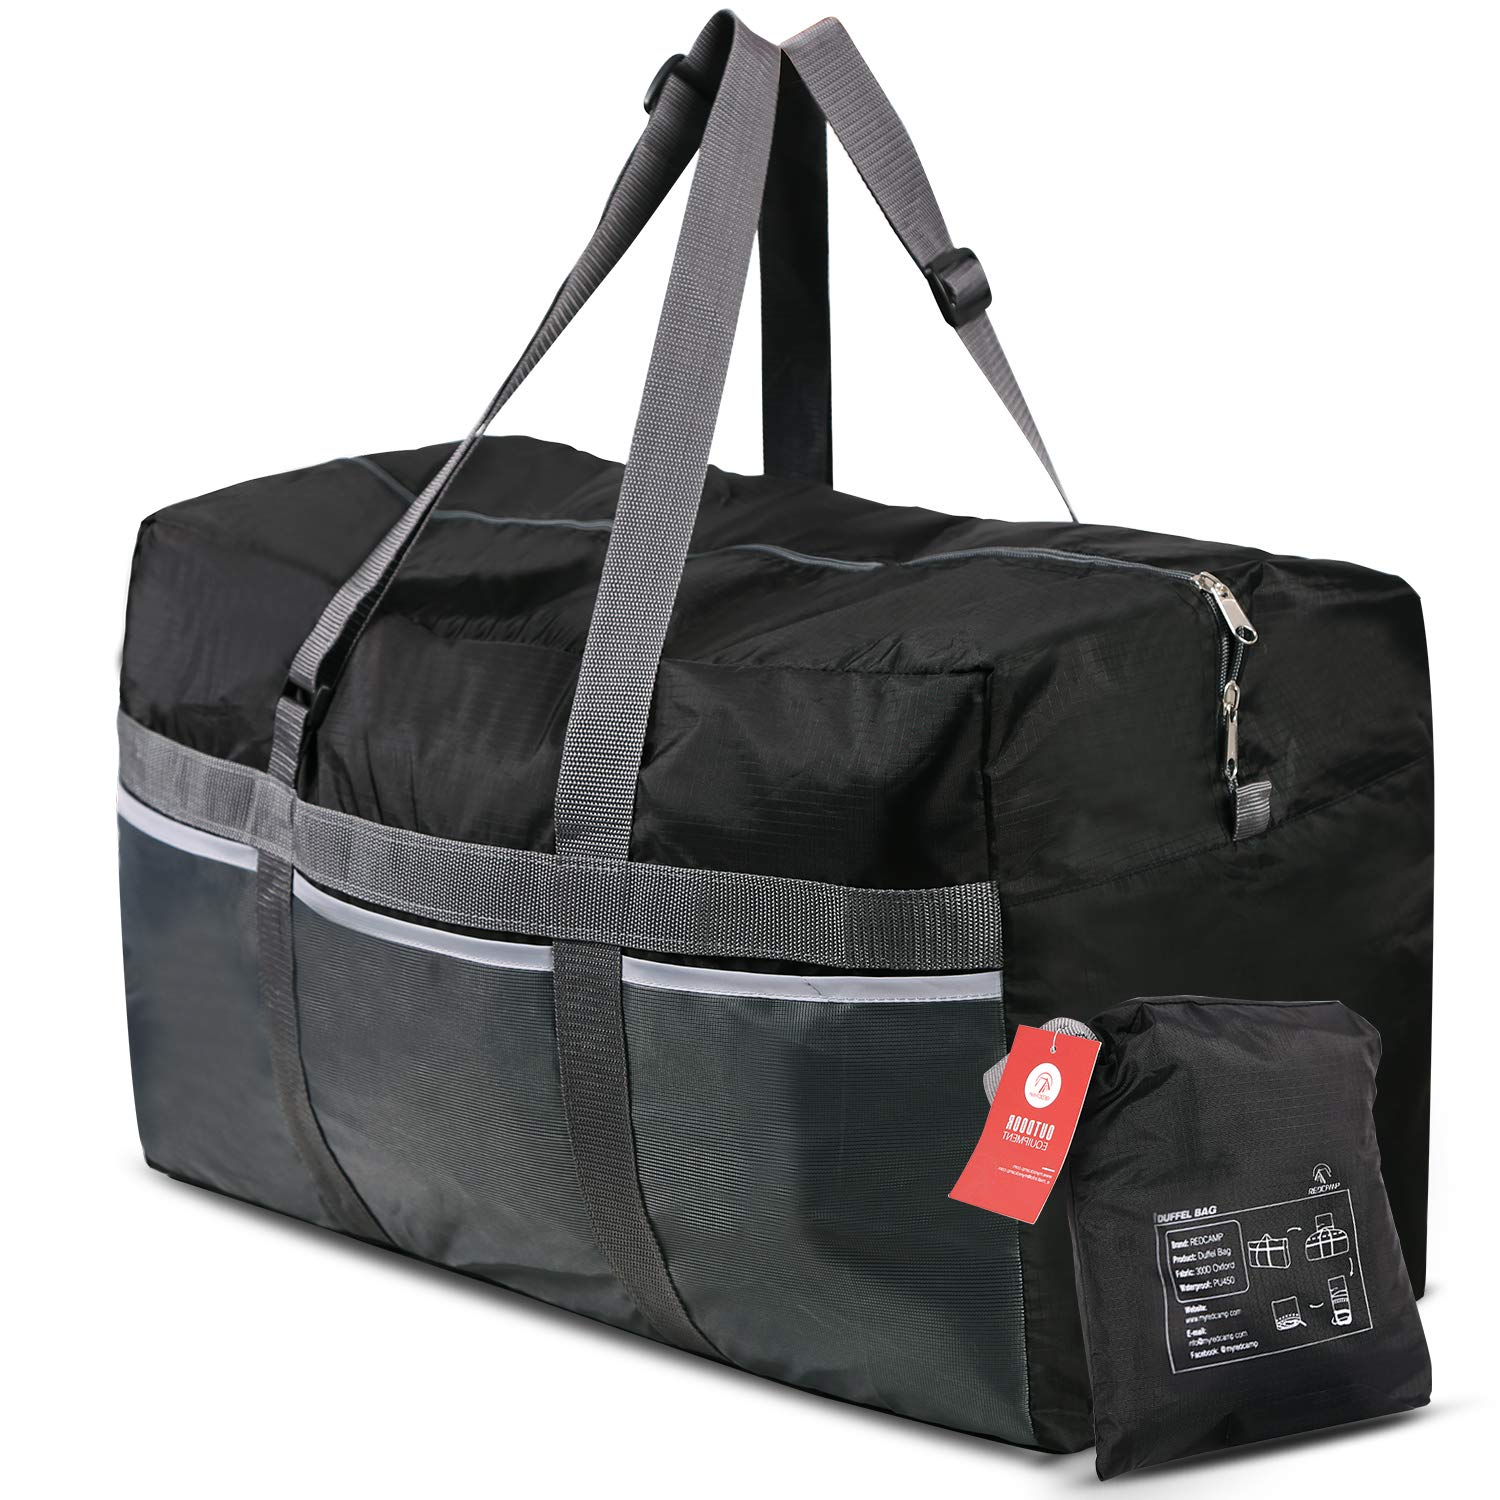 Details about Duffle Bag Travel Mens Womens Overnight Sports Gym Large  Weekender Waterproof 41d124cddcc32